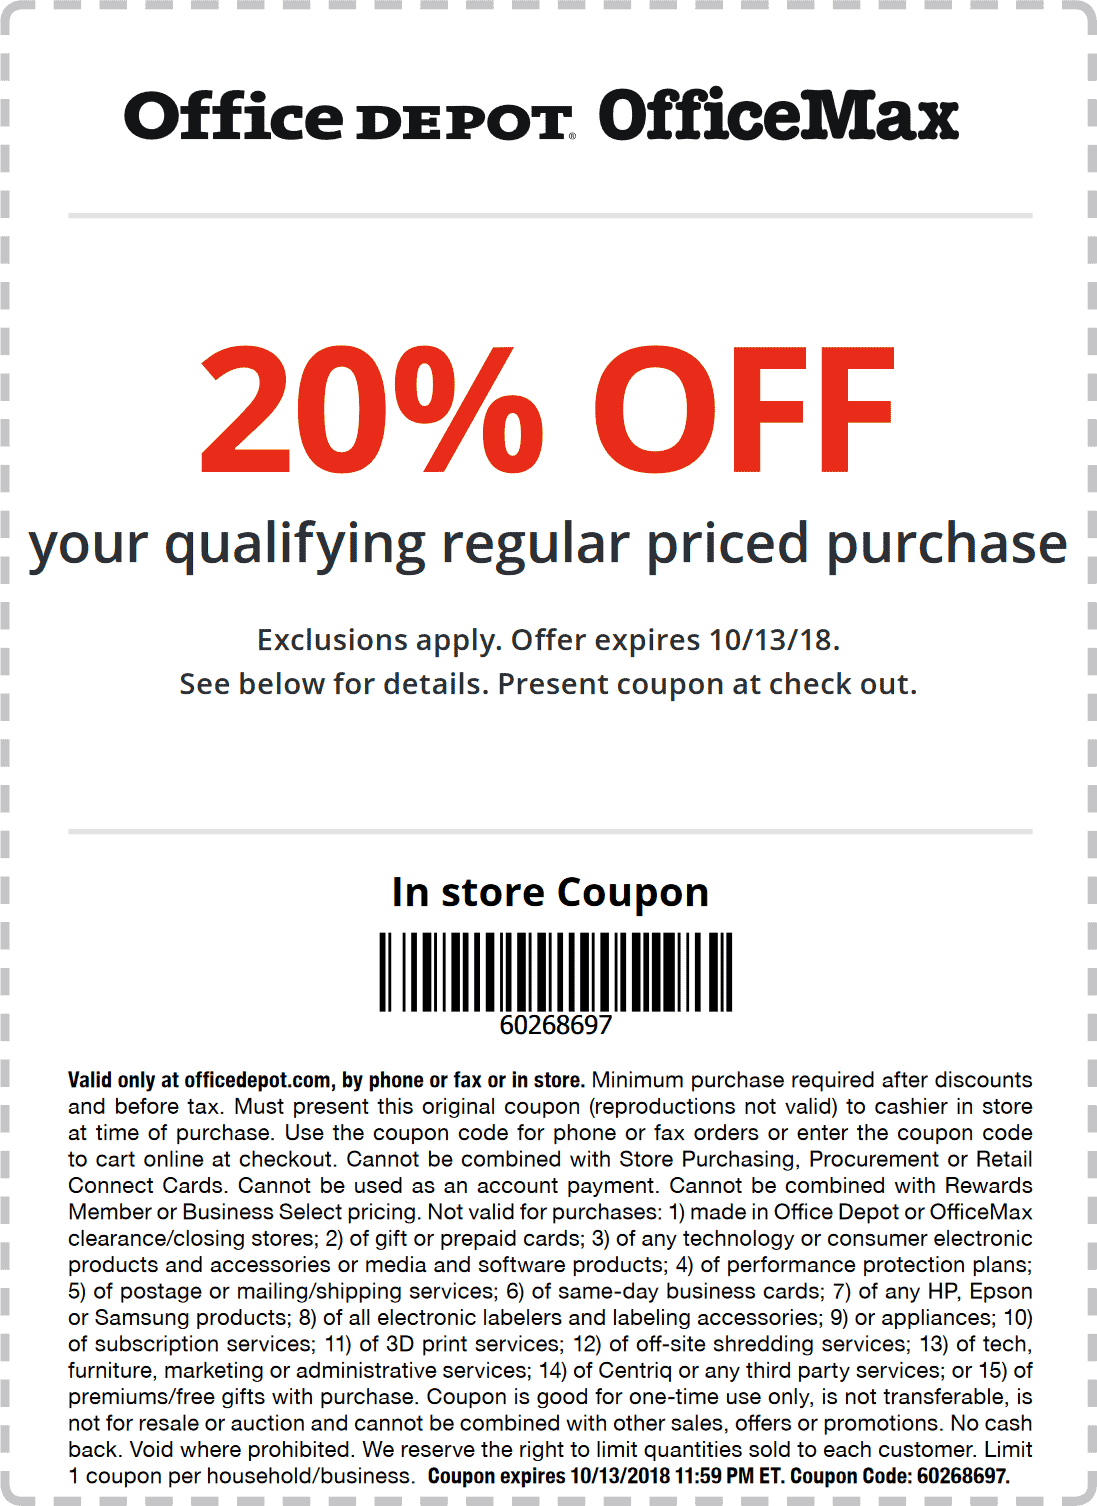 Office Depot Coupon February 2020 20% off at OfficeMax & Office Depot, or online via promo code 60268697